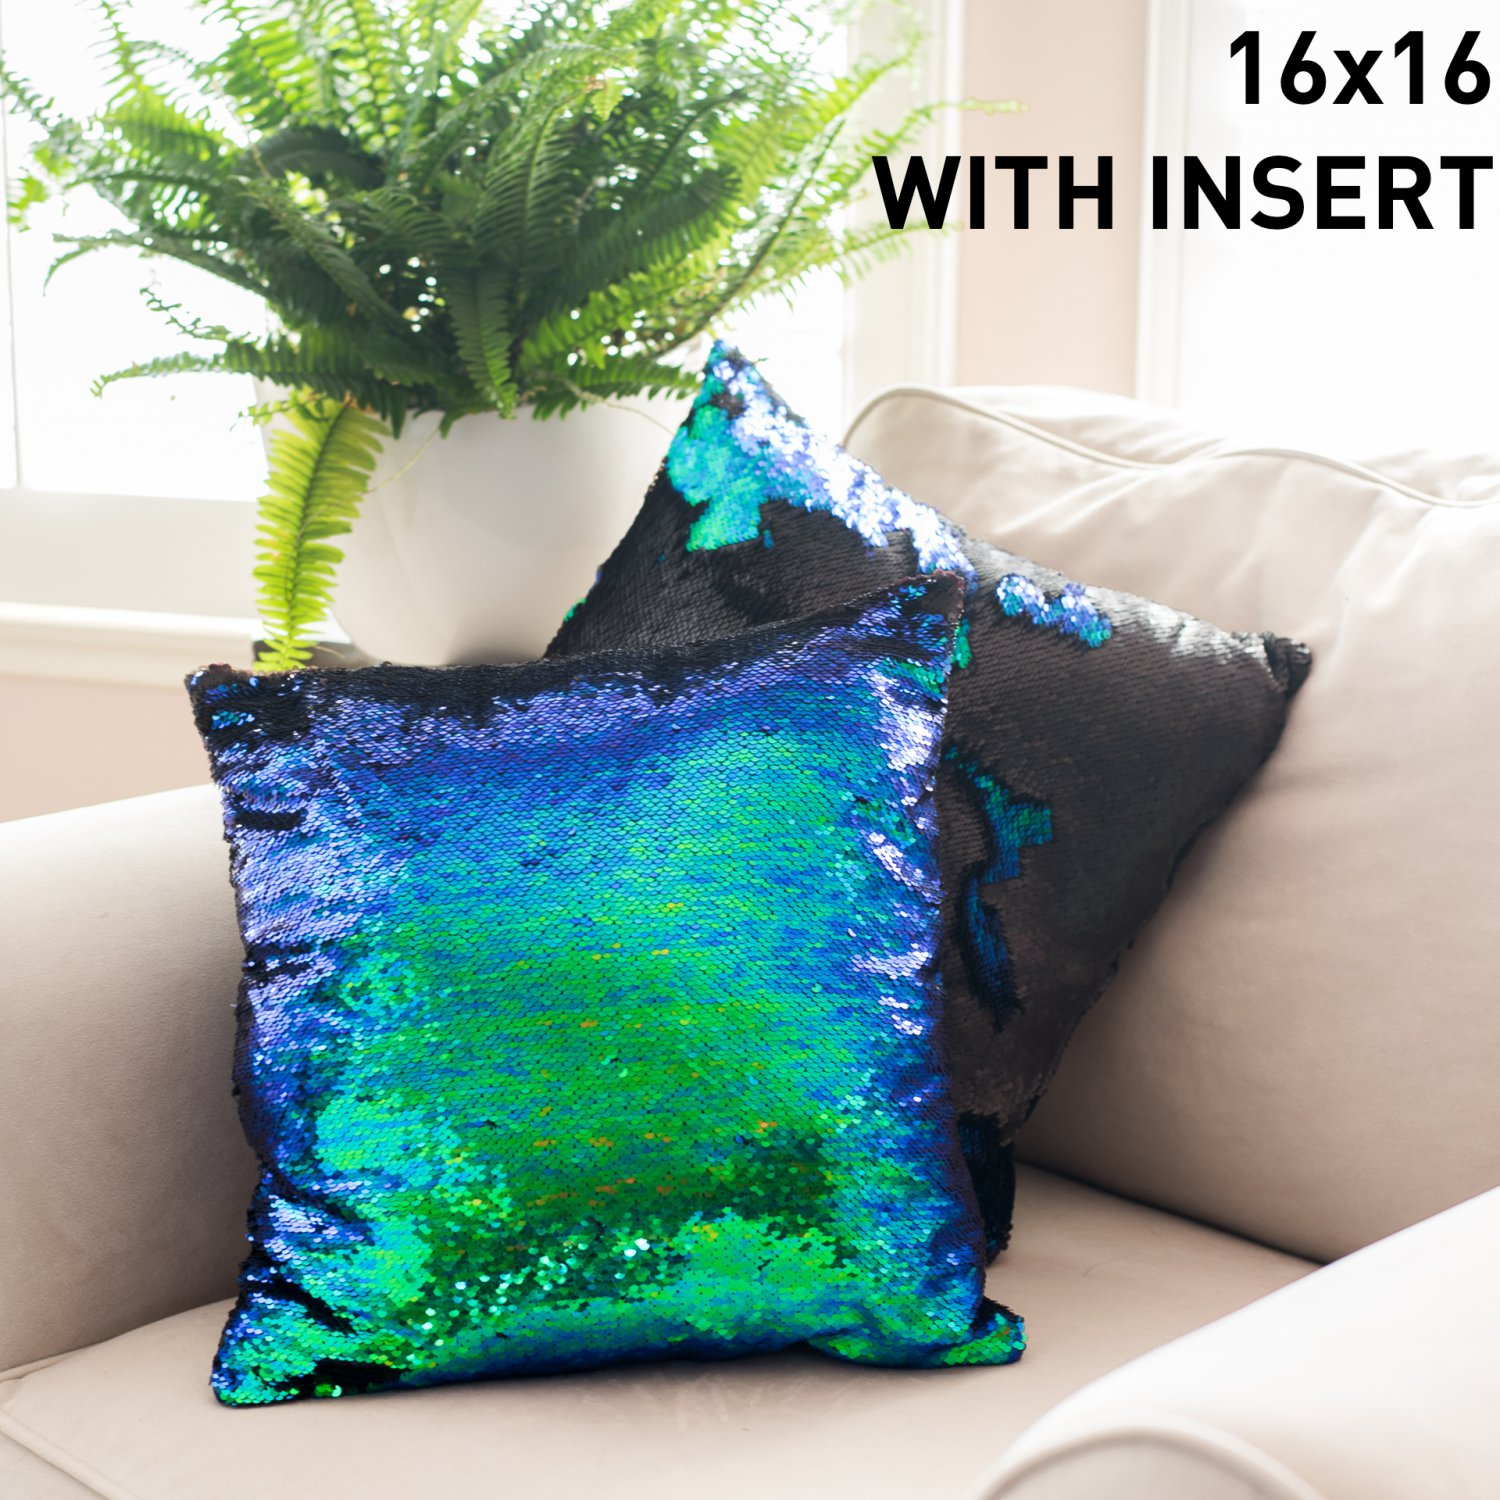 16x16 Mermaid Pillow with Insert Holographic Green with Flip sequin Throw Pillow Mermaid Magic